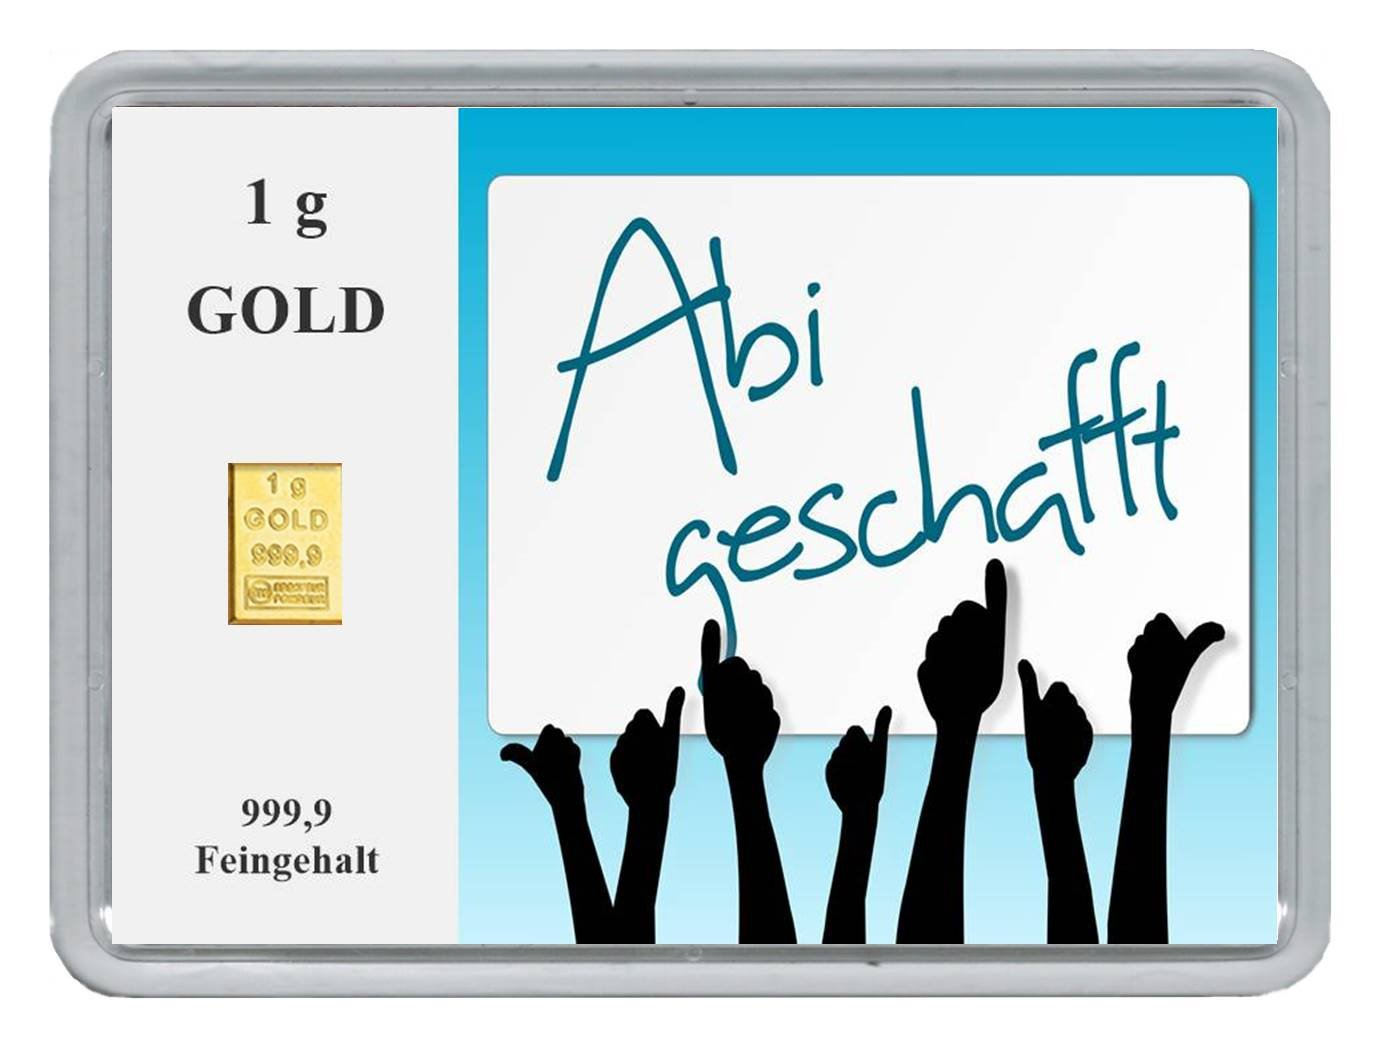 "New Edition 1g Goldbarren 999,9 Feingold in Motivbox""Abitur ."" in edler Goldverpackung 3"